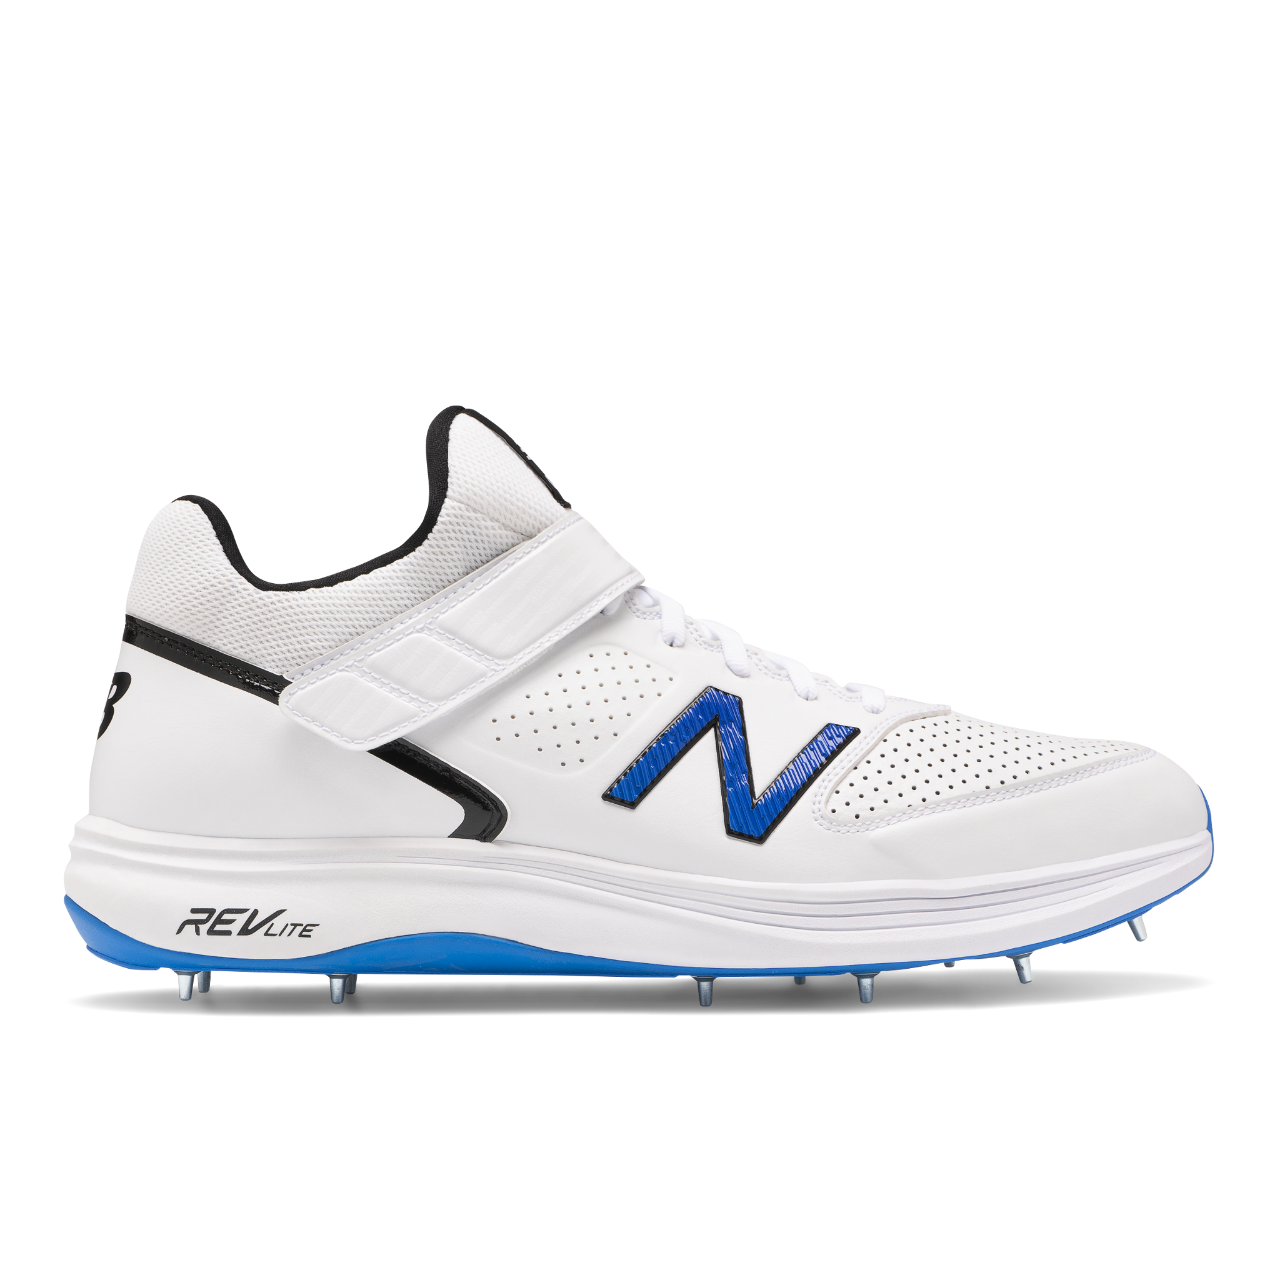 2021 New Balance CK4040 L4 Cricket Shoes